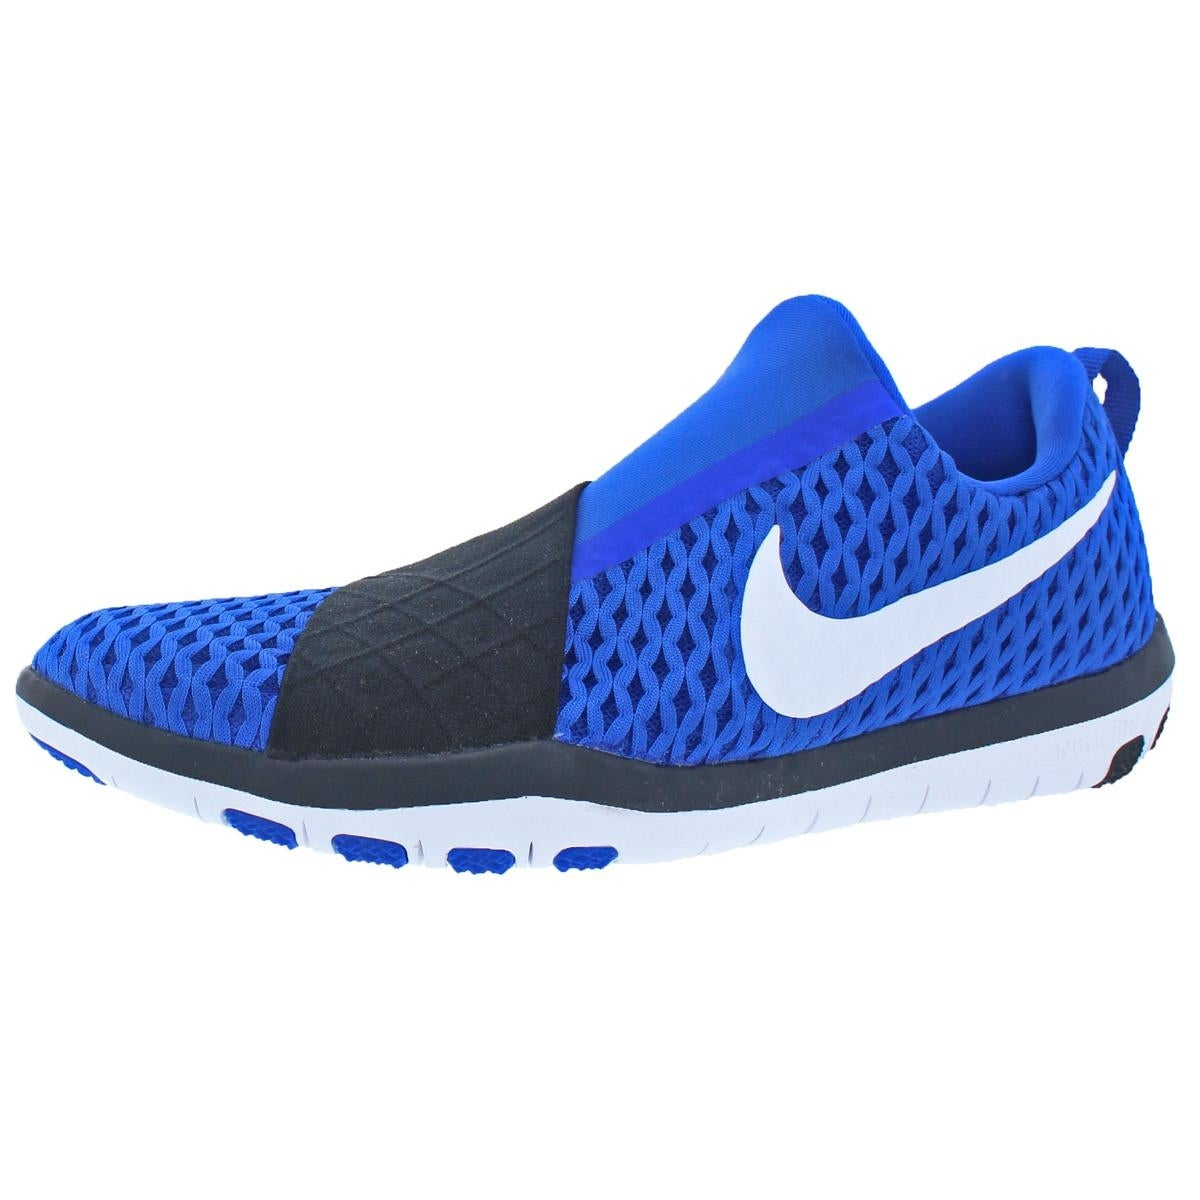 95ccd97f0c37d Shop Nike Womens Free Connect Trainers Training Mesh - Free Shipping On  Orders Over  45 - Overstock - 21942839